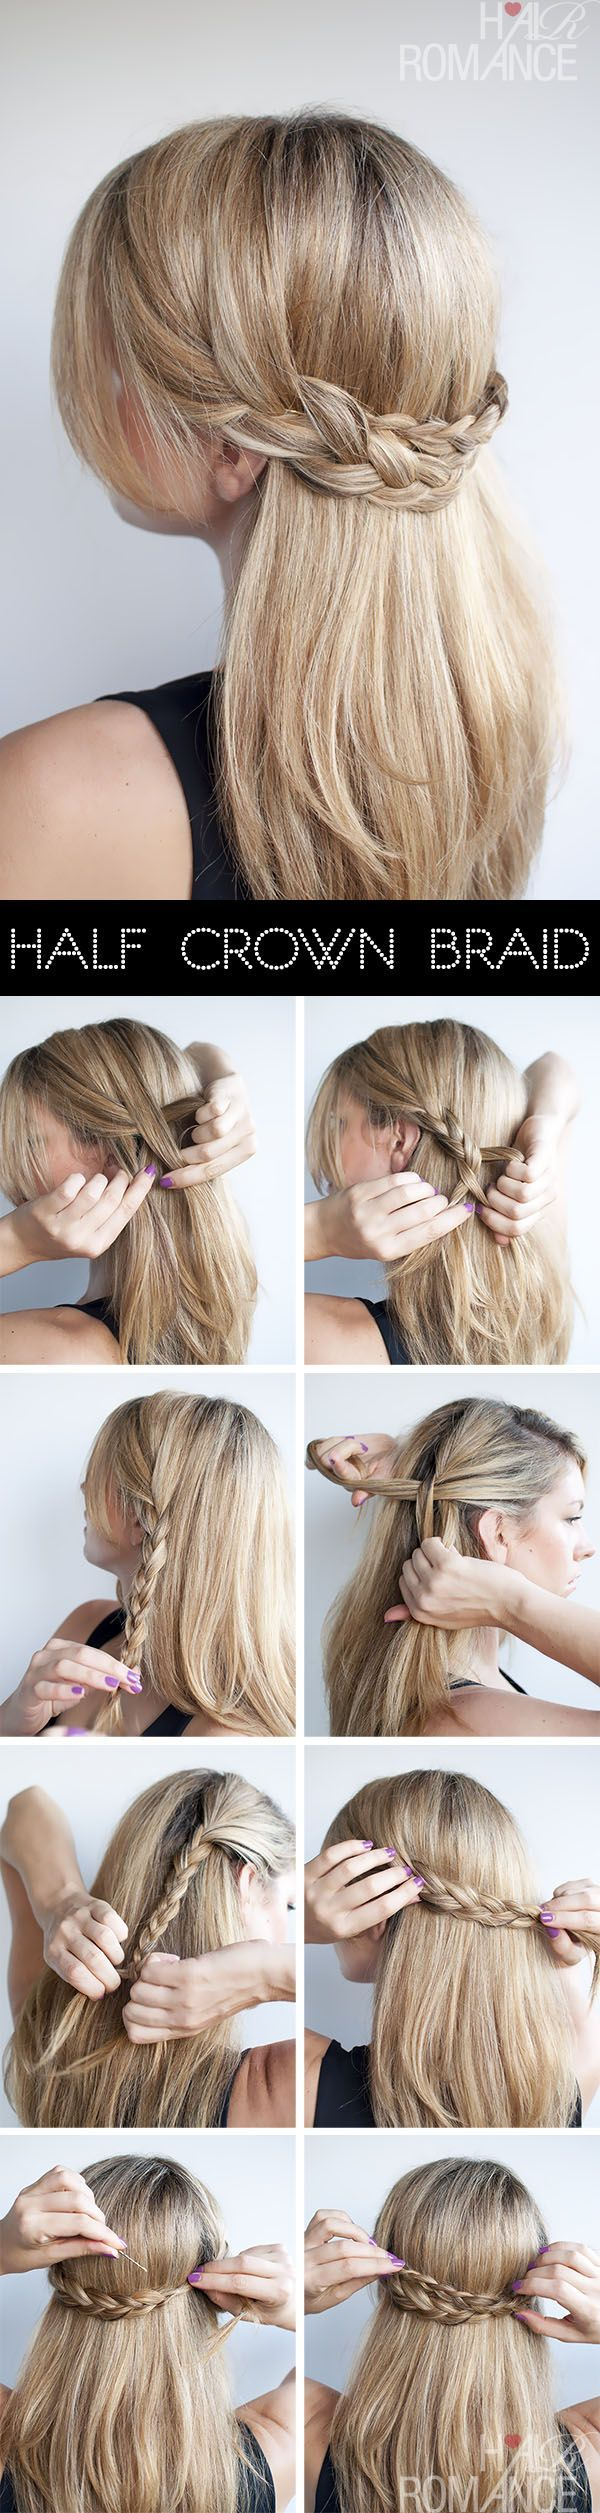 Half crown braid tutorial ~ pretty for every day